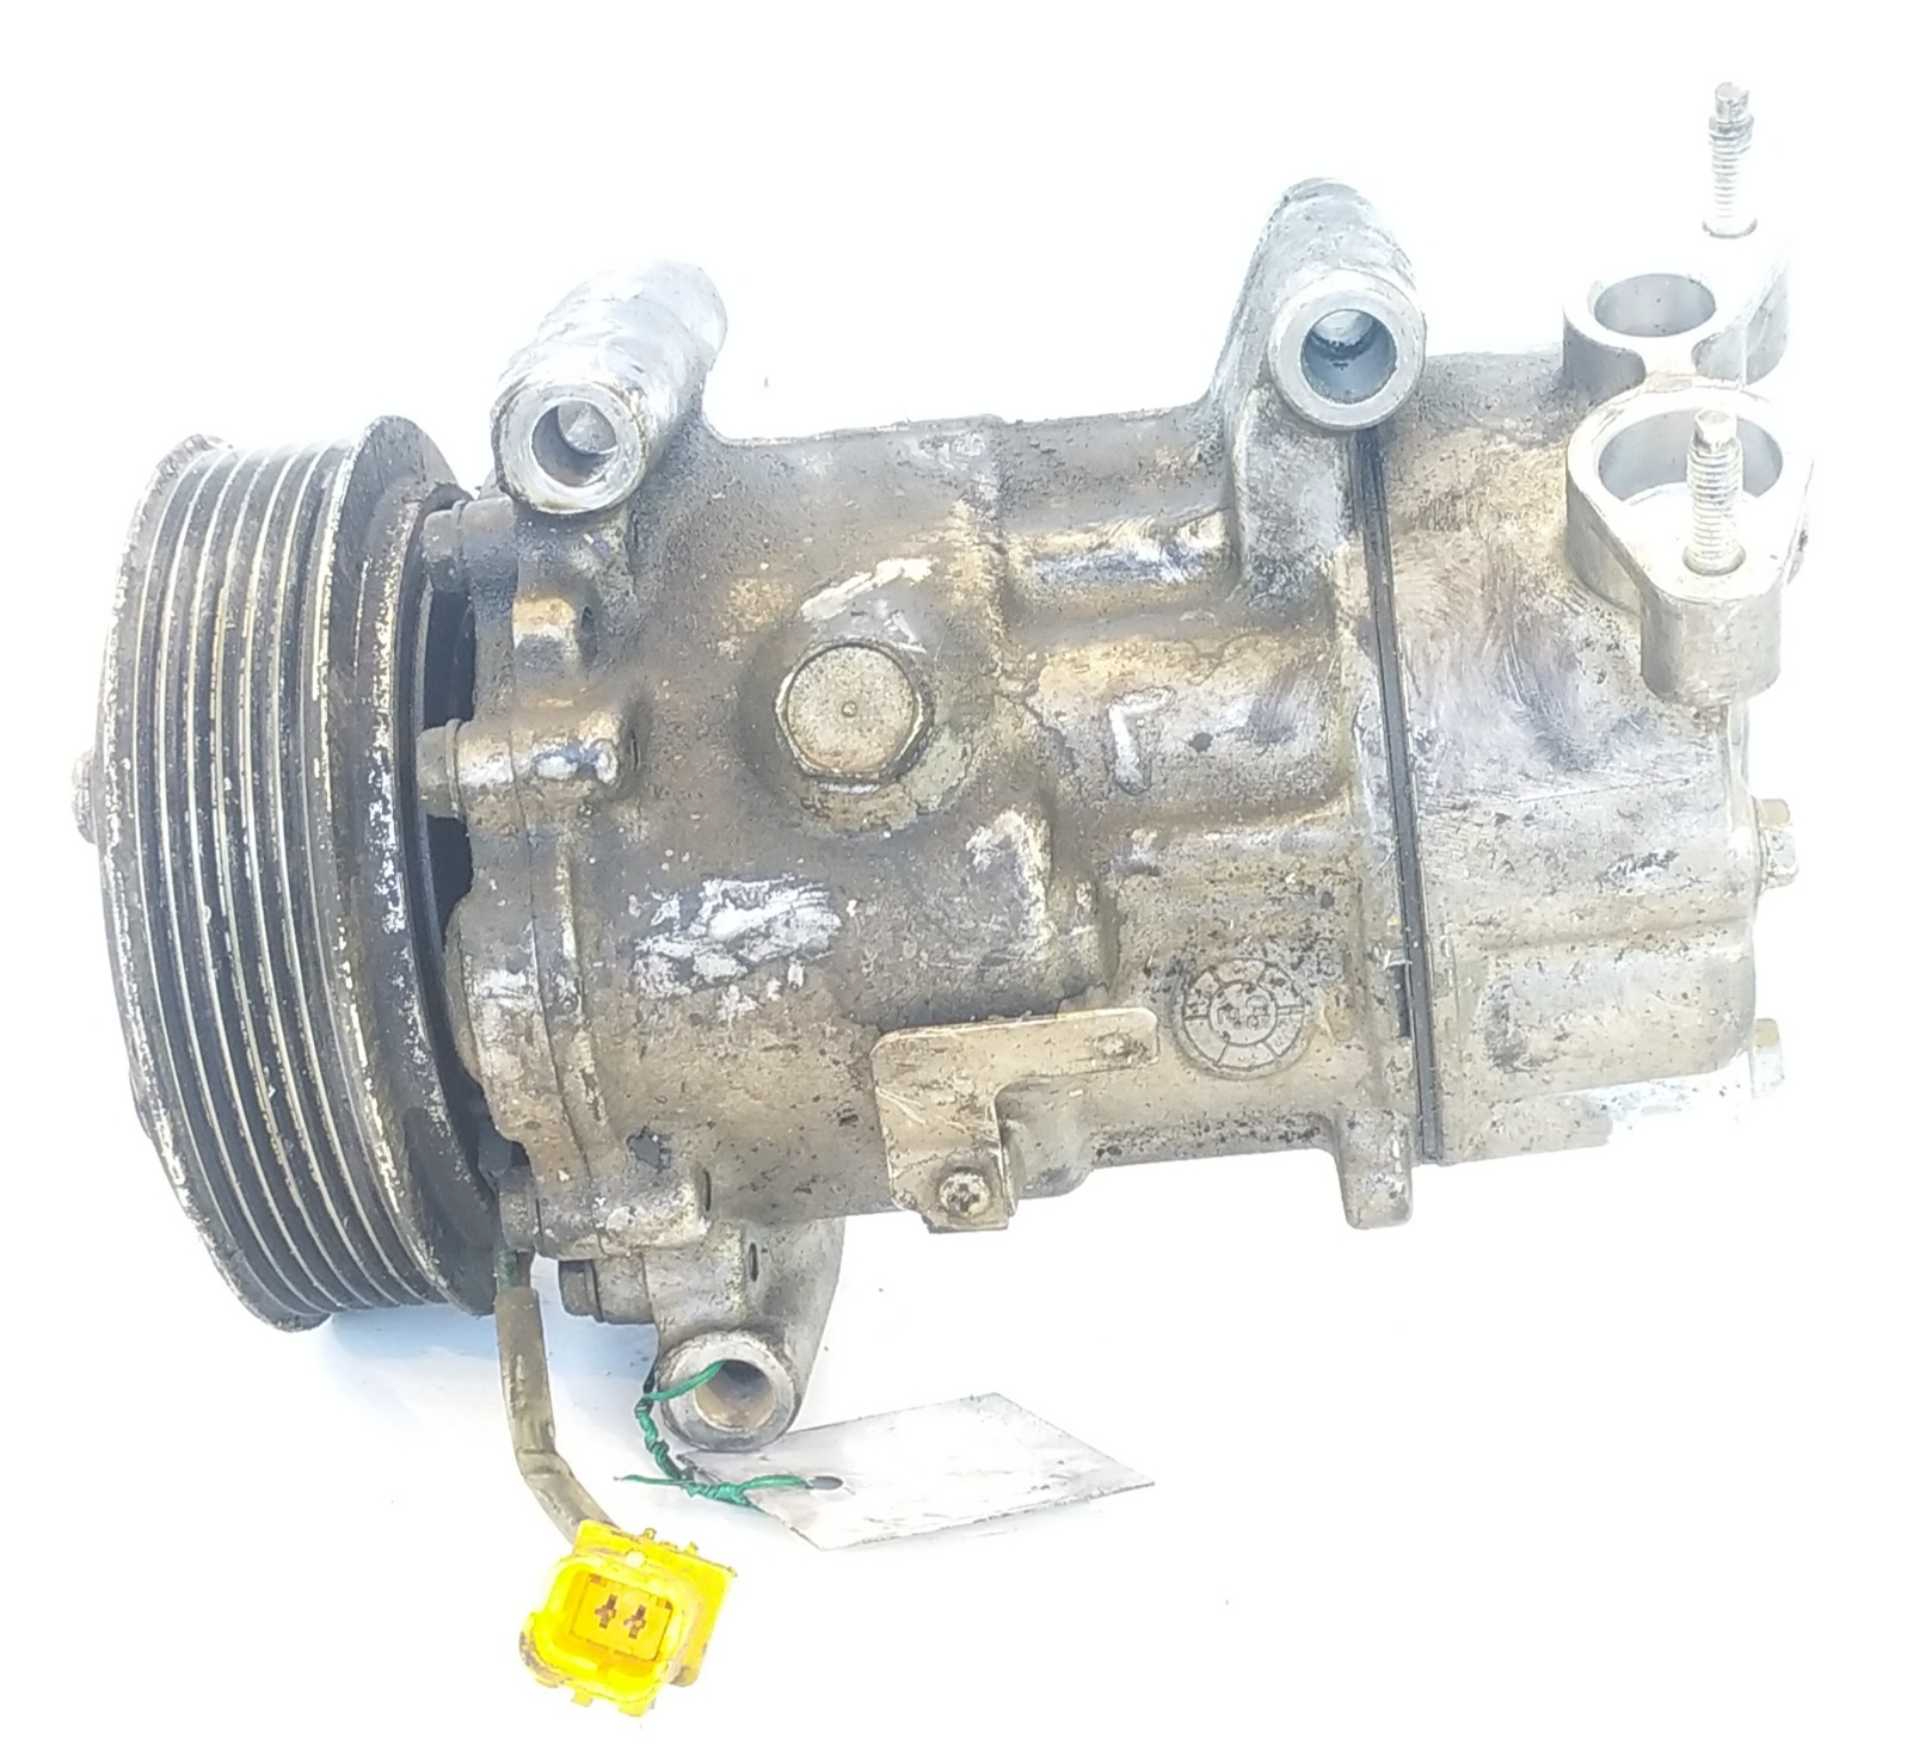 COMPRESOR AIRE ACOND. PEUGEOT 206 Fastback 1.4 HDi eco 70 (50 KW / 68 CV) (09.2001 - 04.2009)